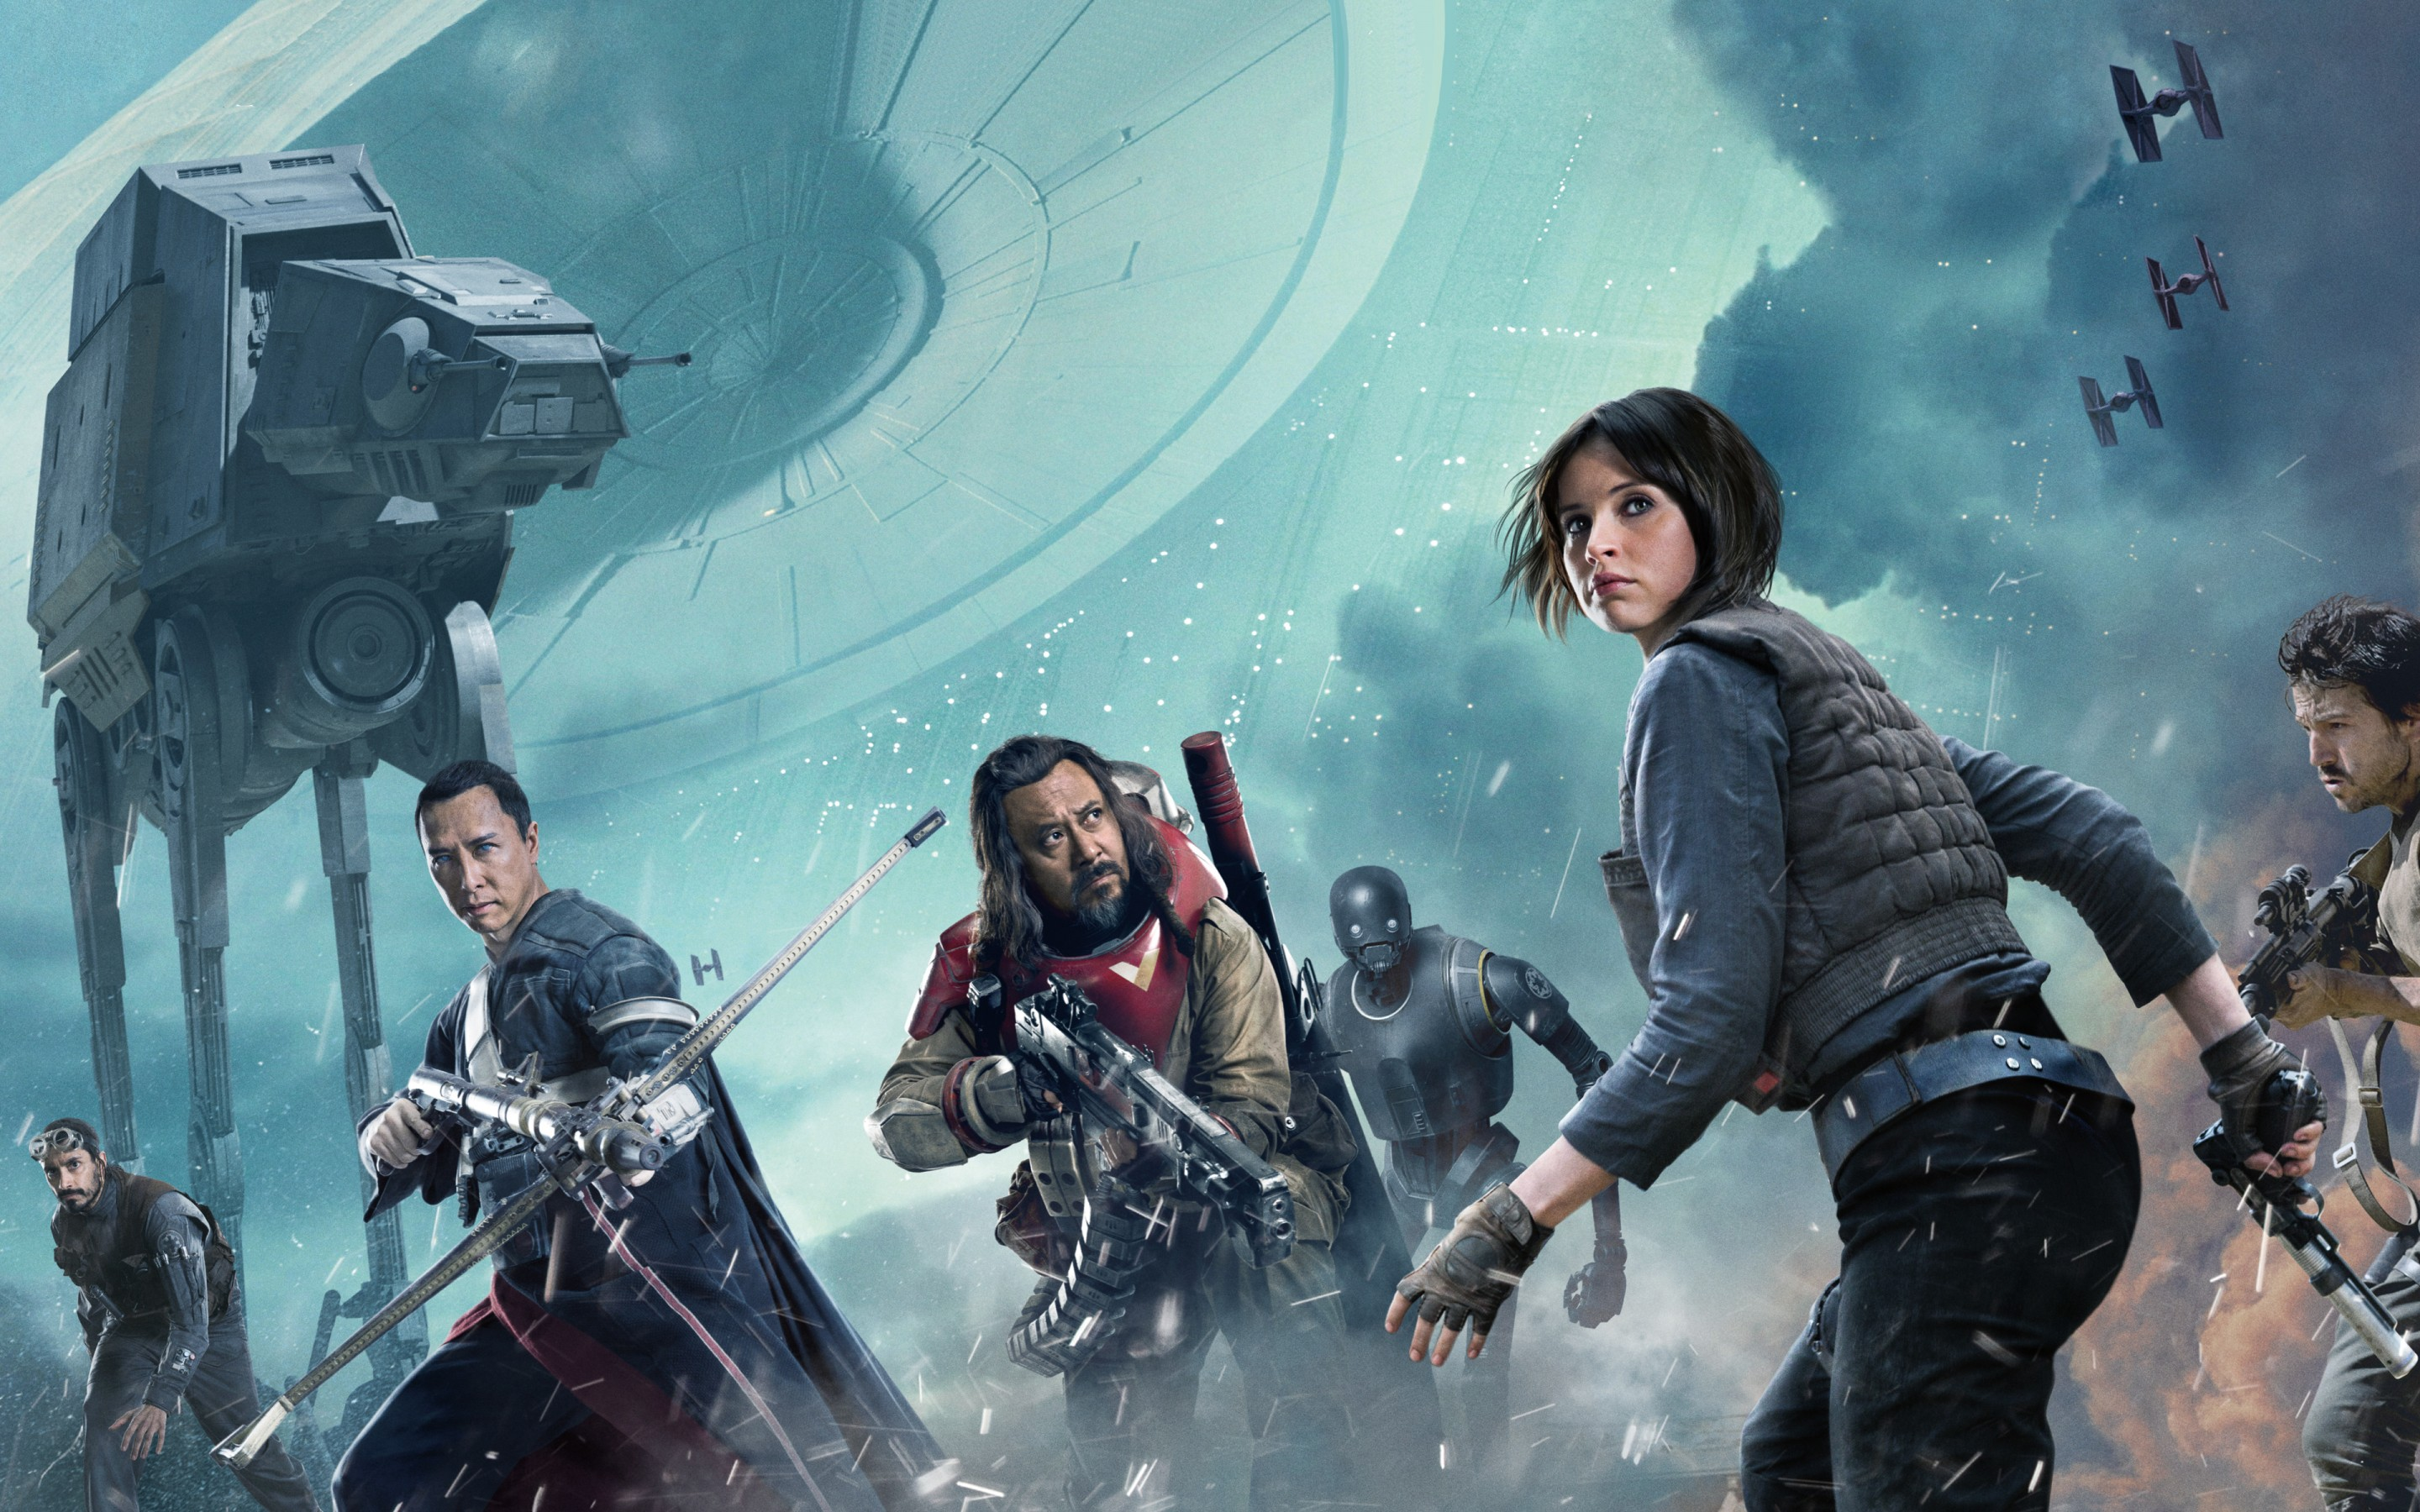 Star Wars Rogue One Crew , HD Wallpaper & Backgrounds